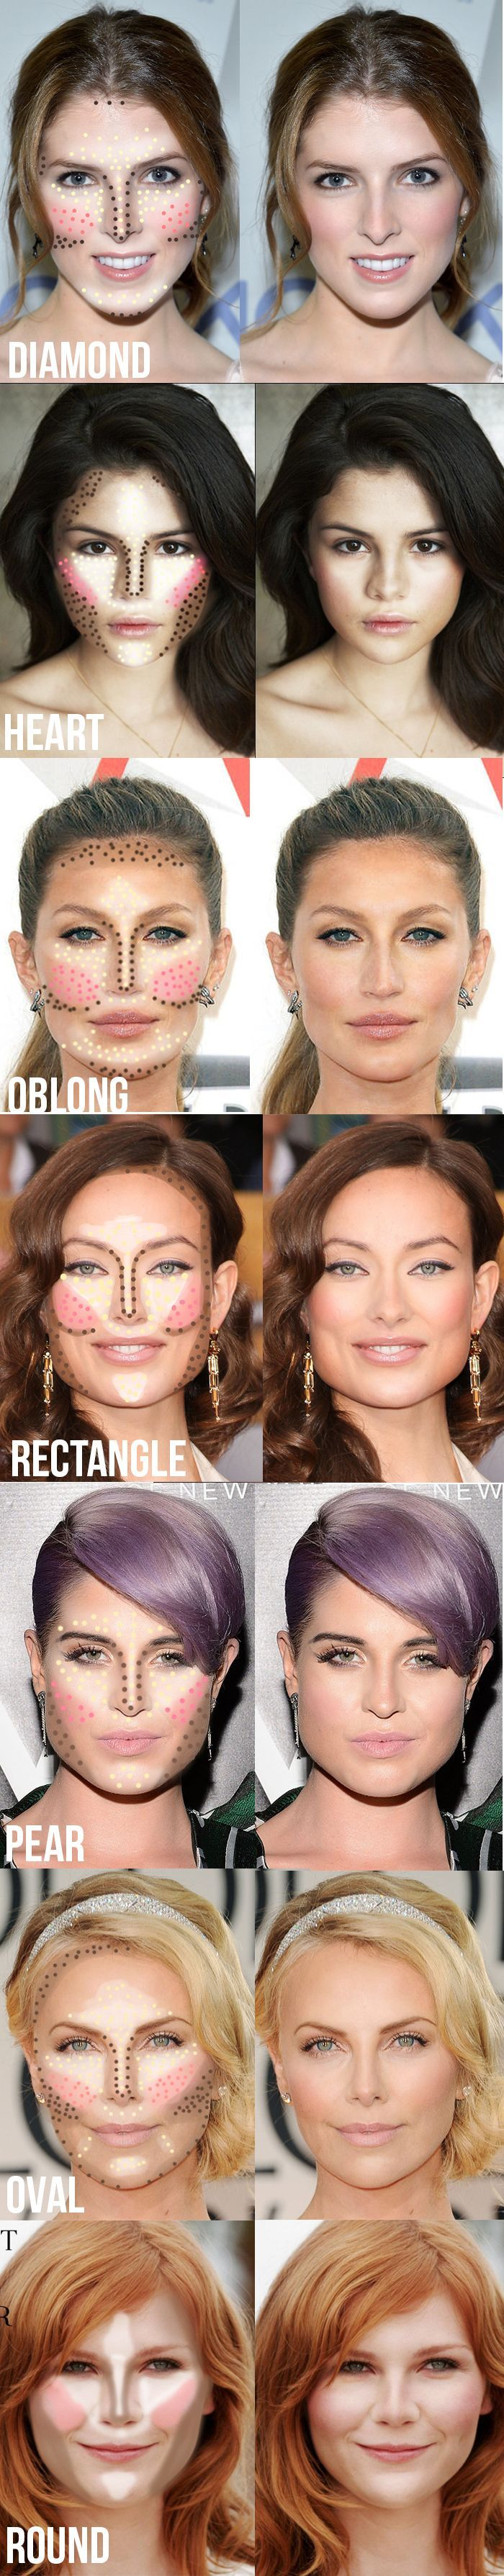 Oh cool!  I have no idea how to contour.